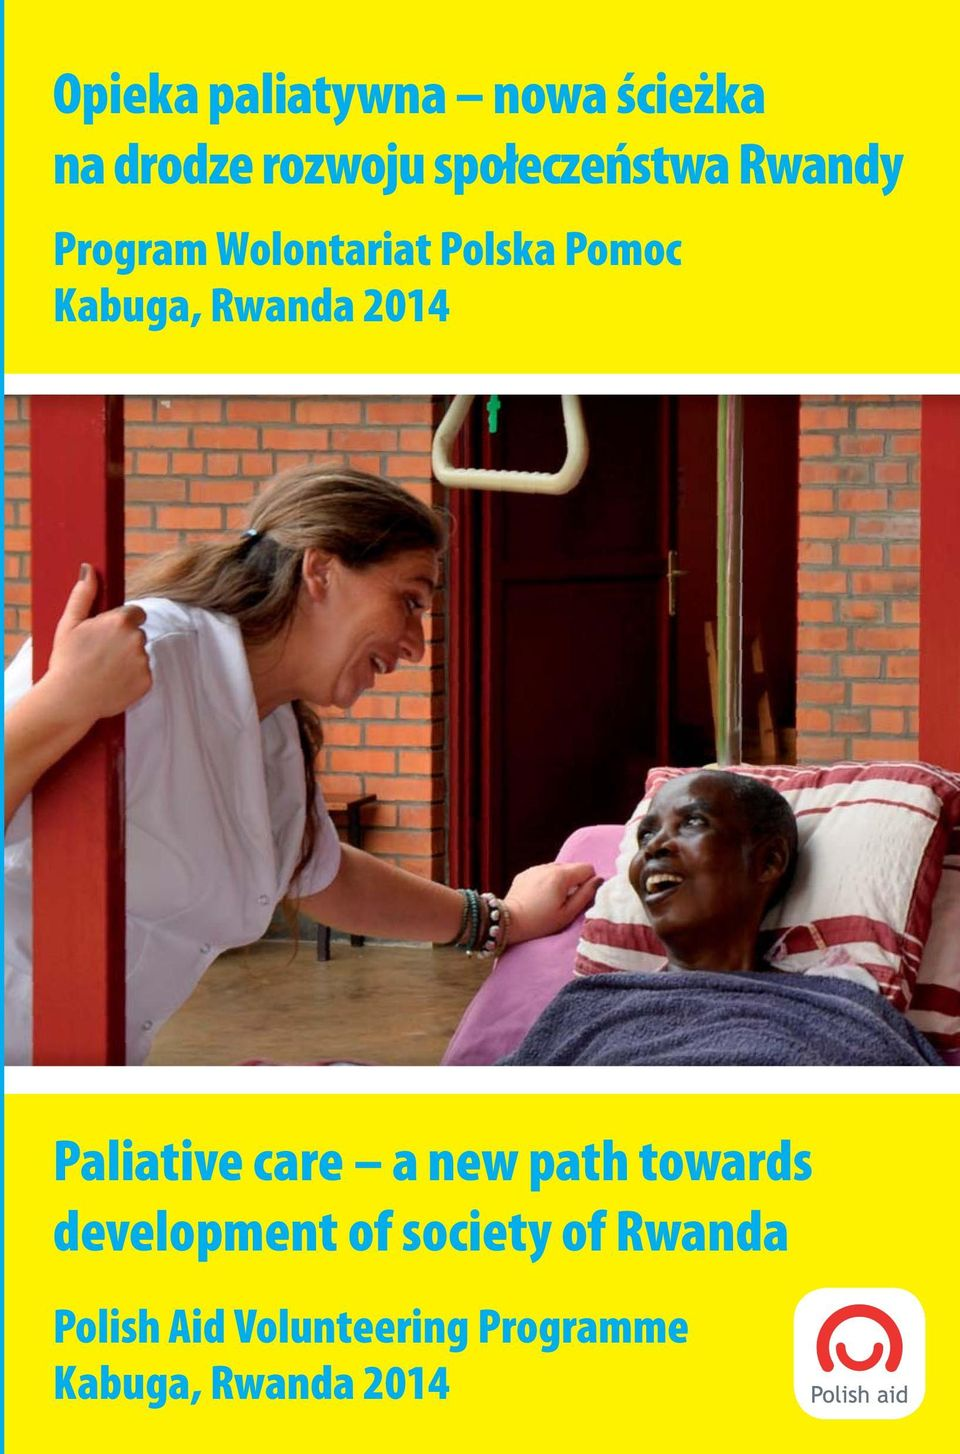 Kabuga, Rwanda 2014 Paliative care a new path towards